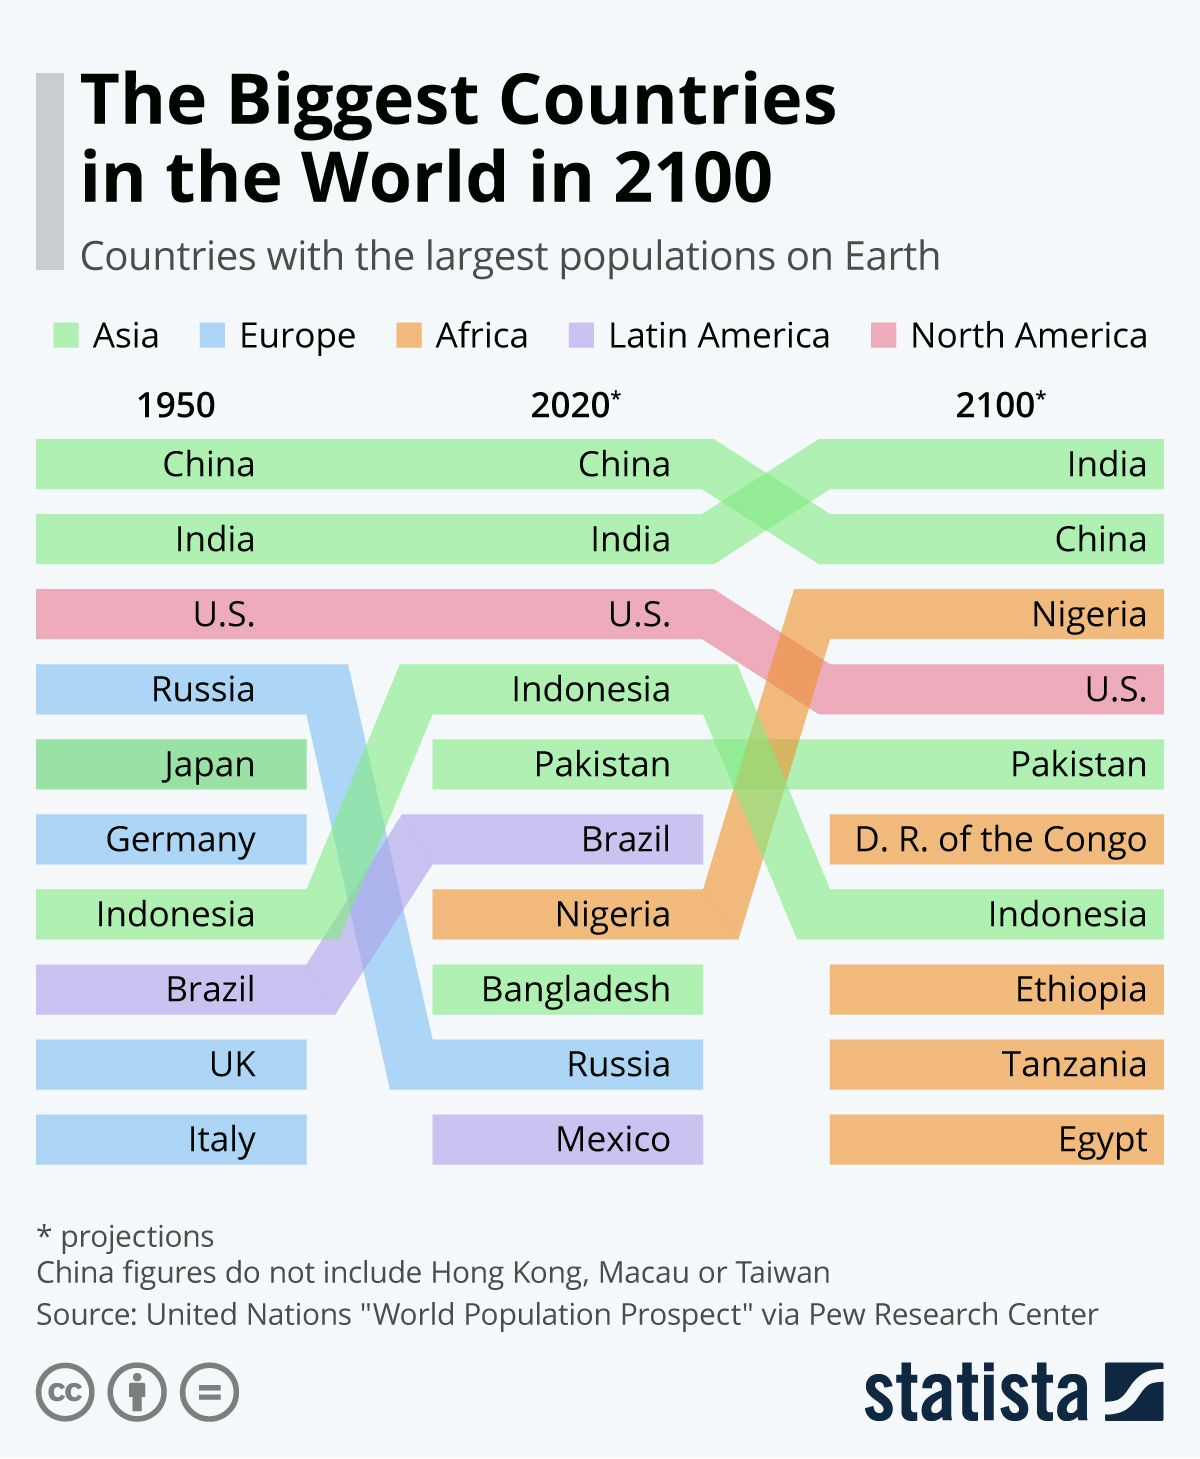 Infographic In 2100, Five of the Ten Biggest Countries in